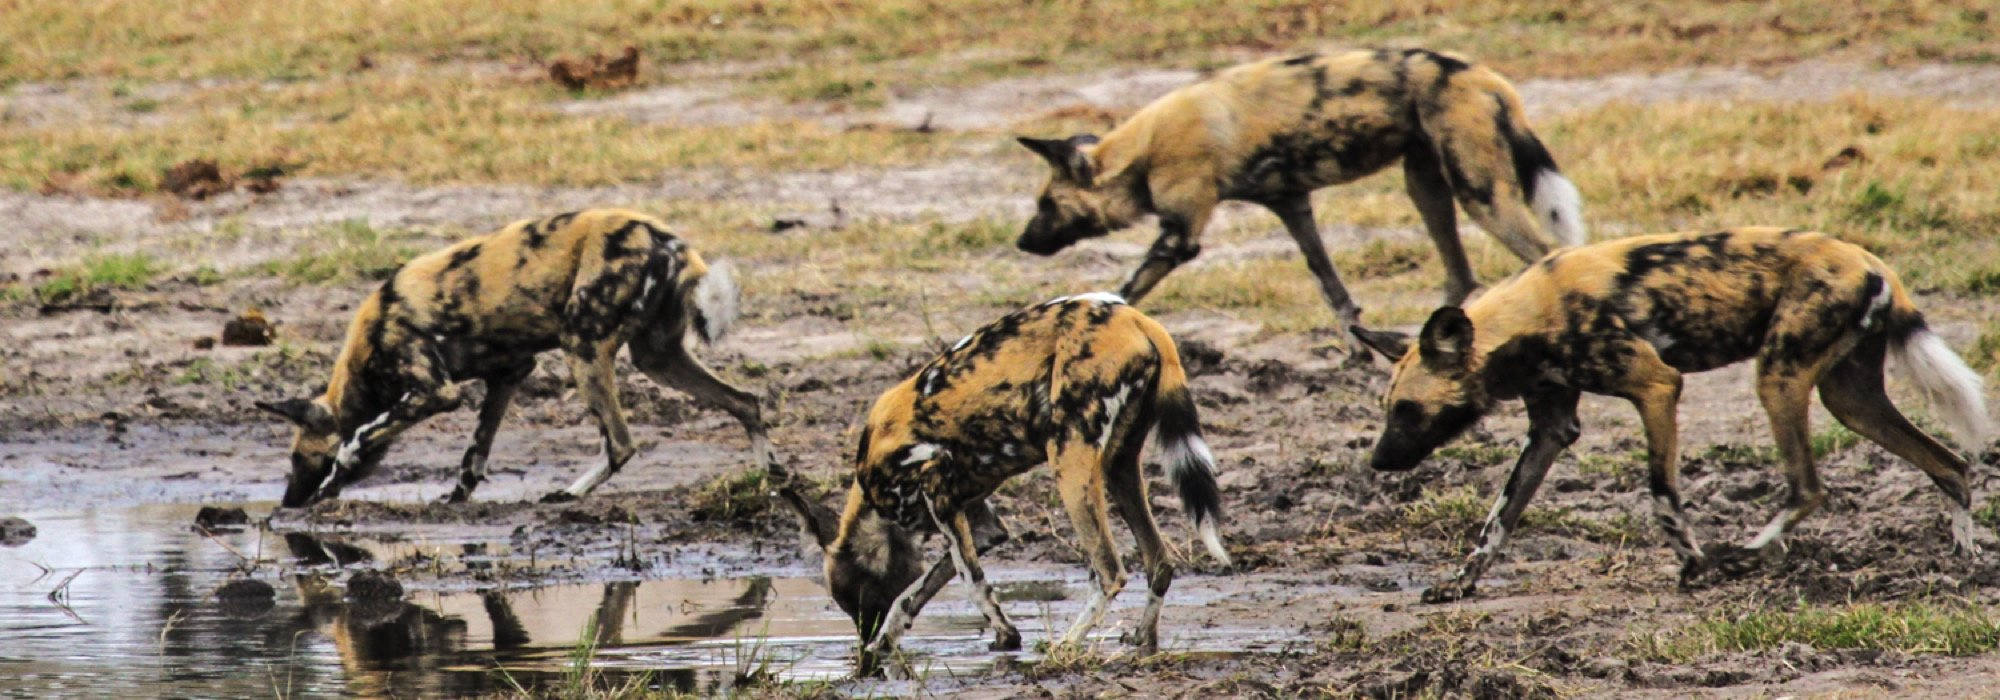 Wild Dog in Hwange National Park